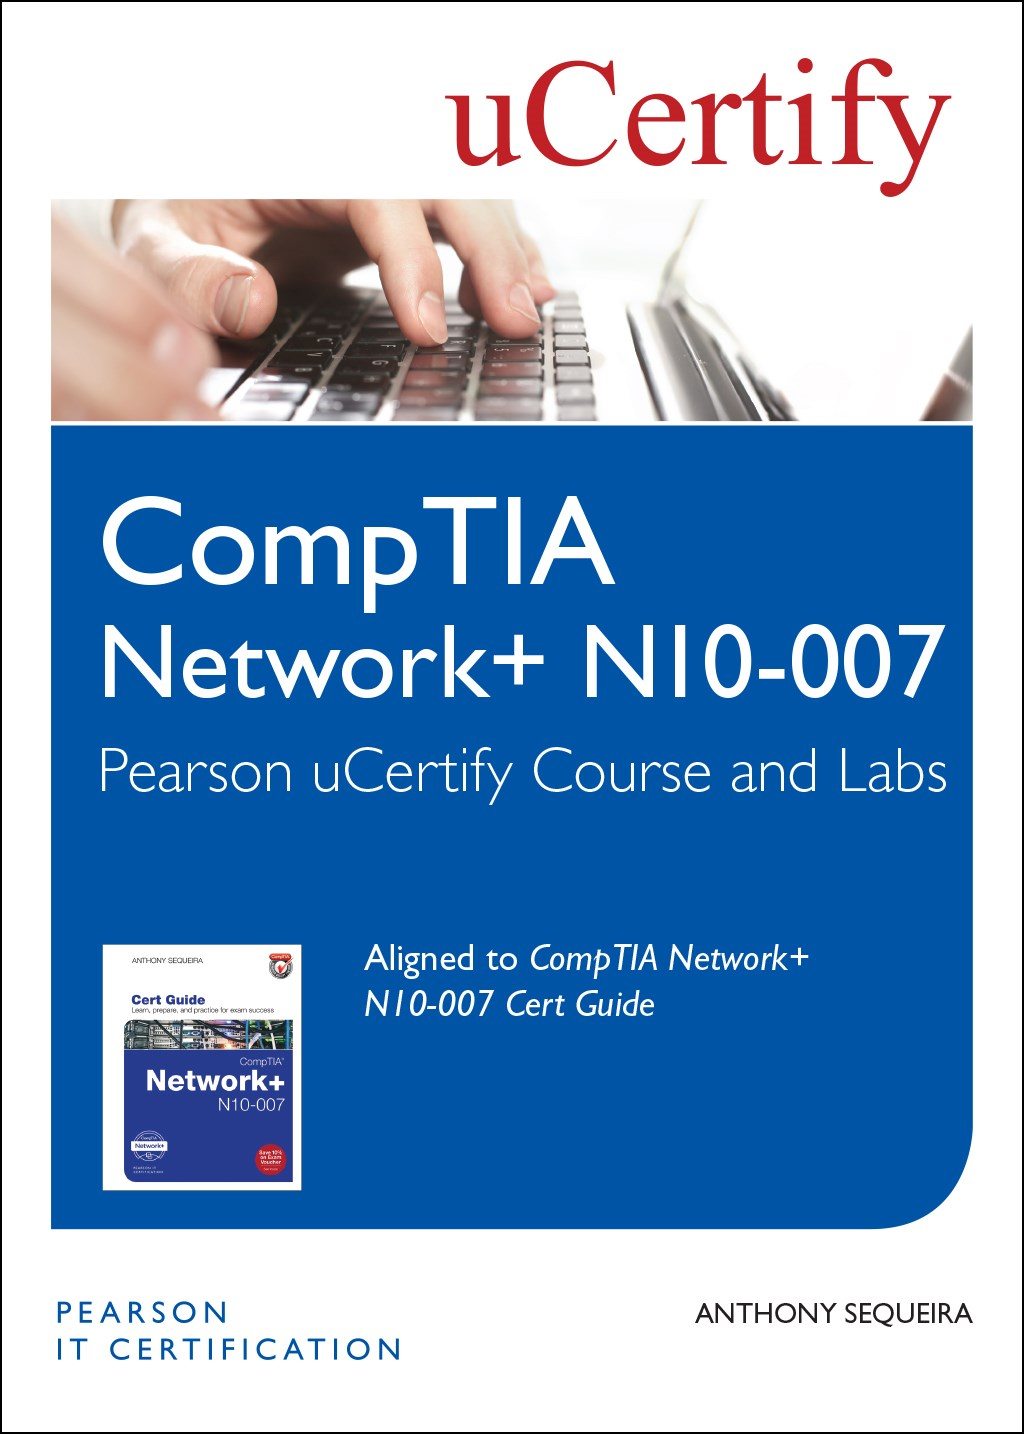 CompTIA Network+ N10-007 Pearson uCertify Course and Labs Student Access Card